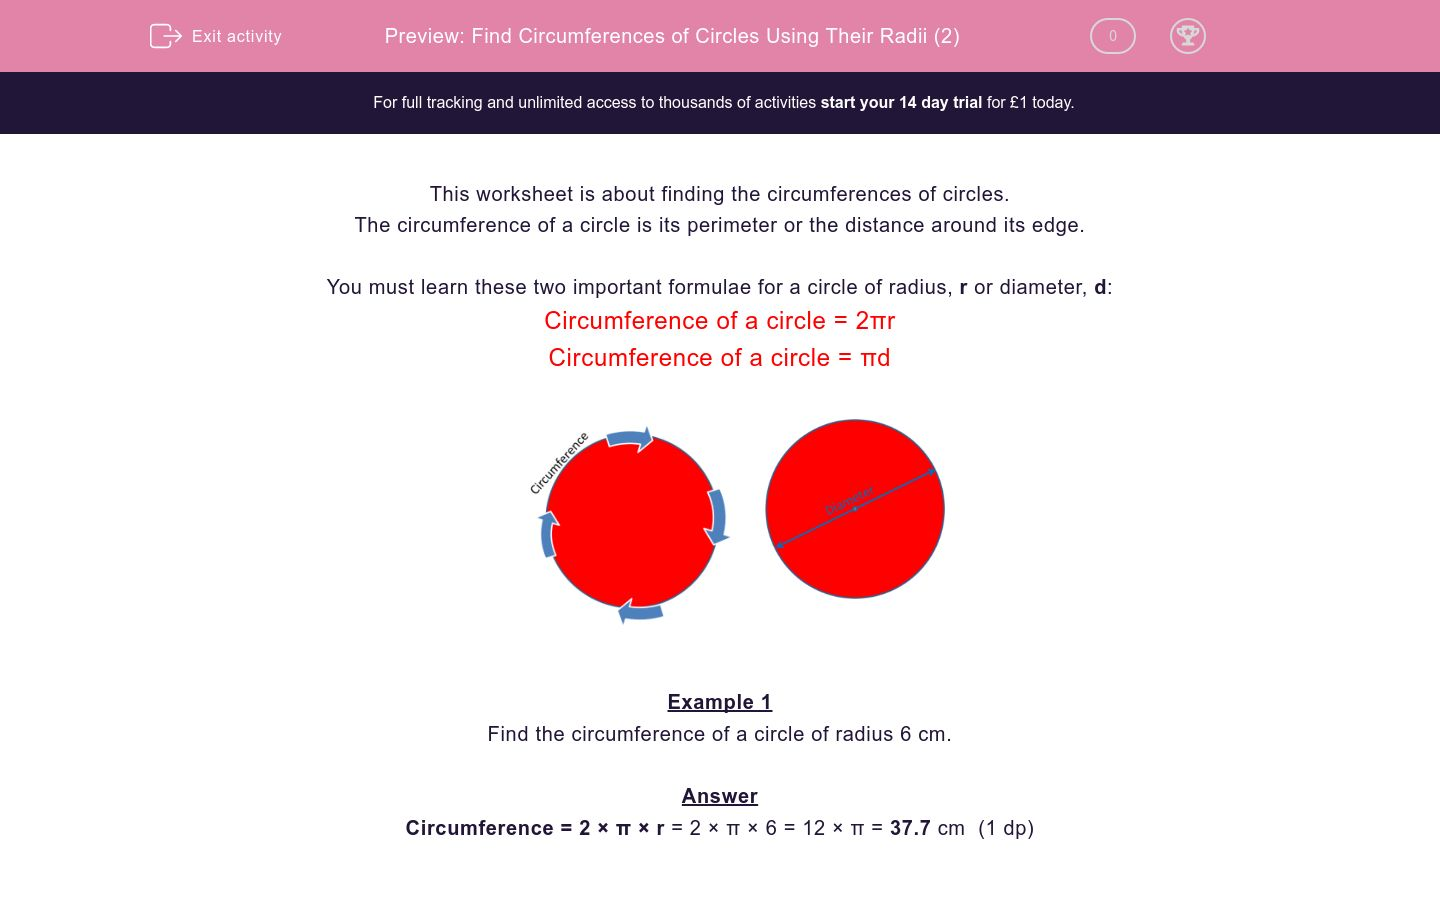 'Find Circumferences of Circles Using Their Radii (2)' worksheet